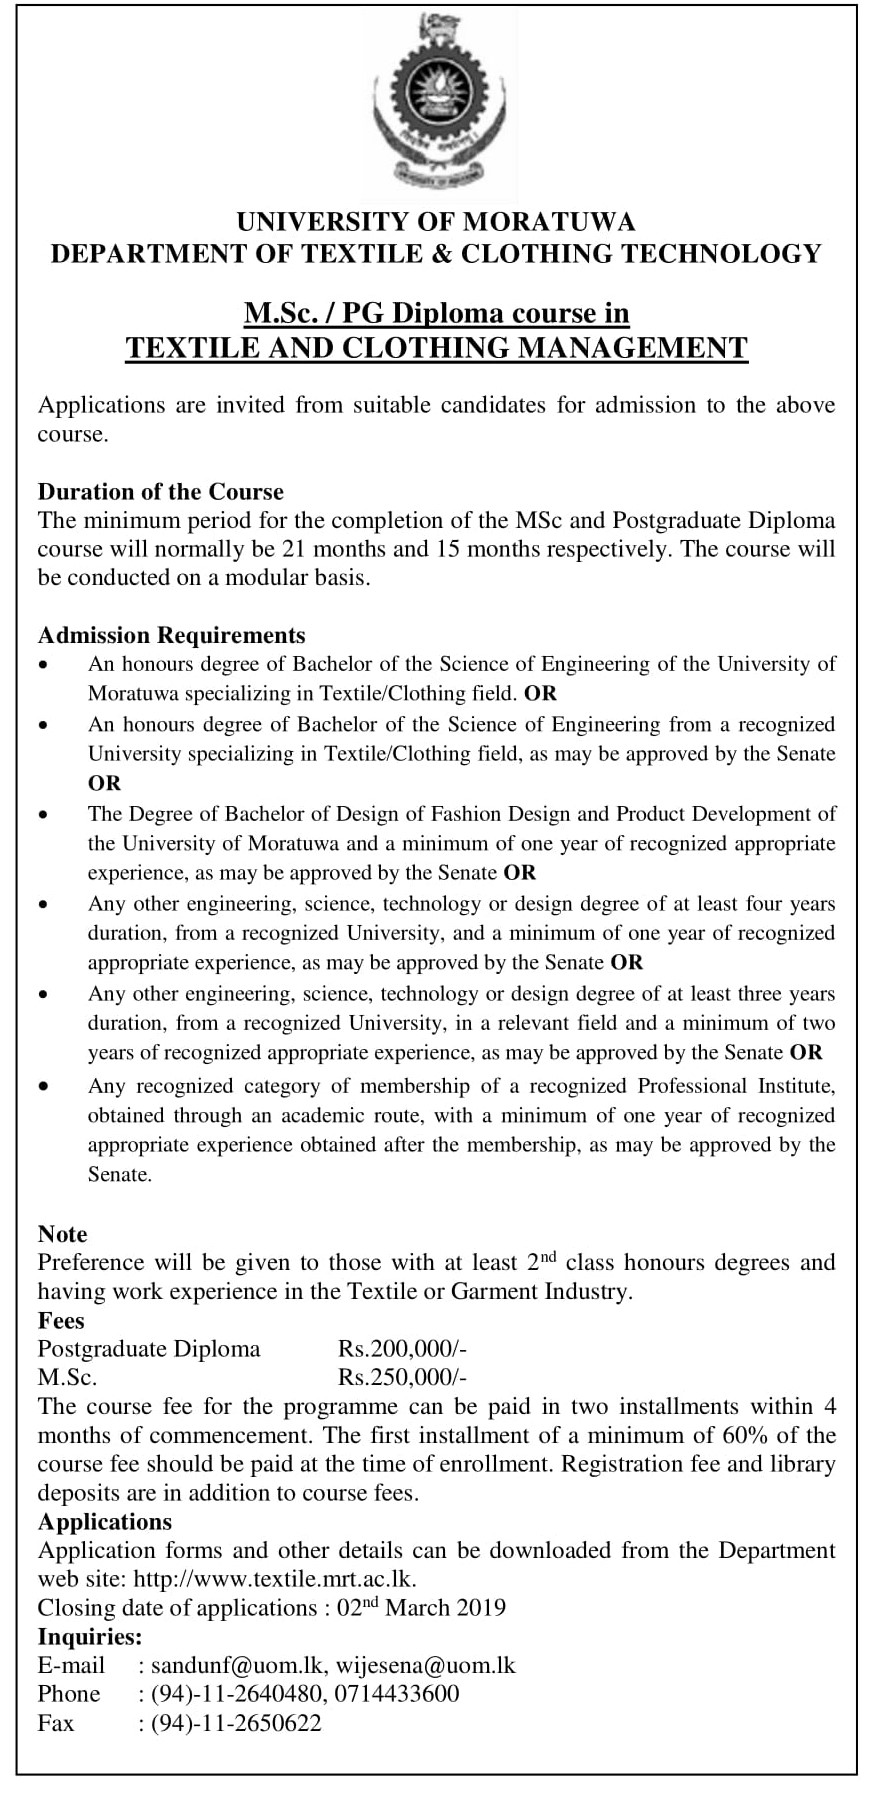 MSc/PG Diploma in Textile and Clothing Management